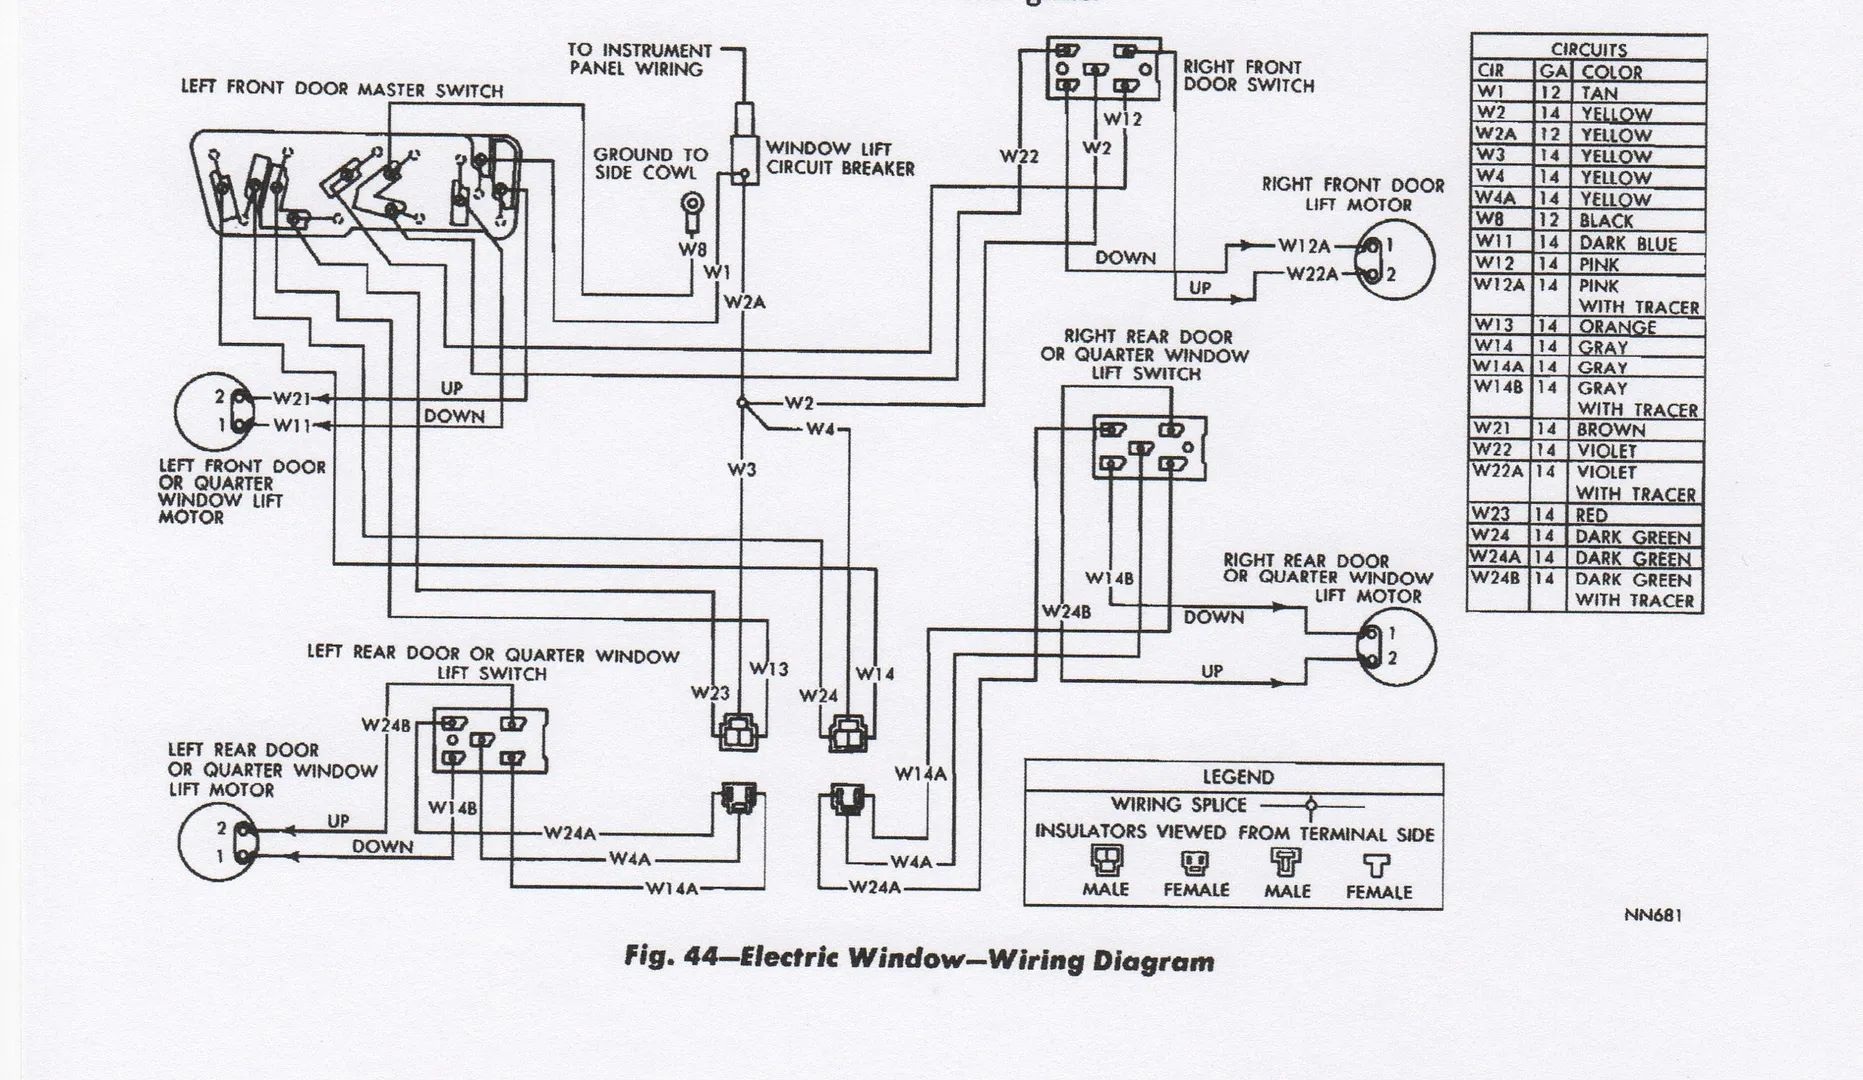 1966 dodge coronet wiring diagram